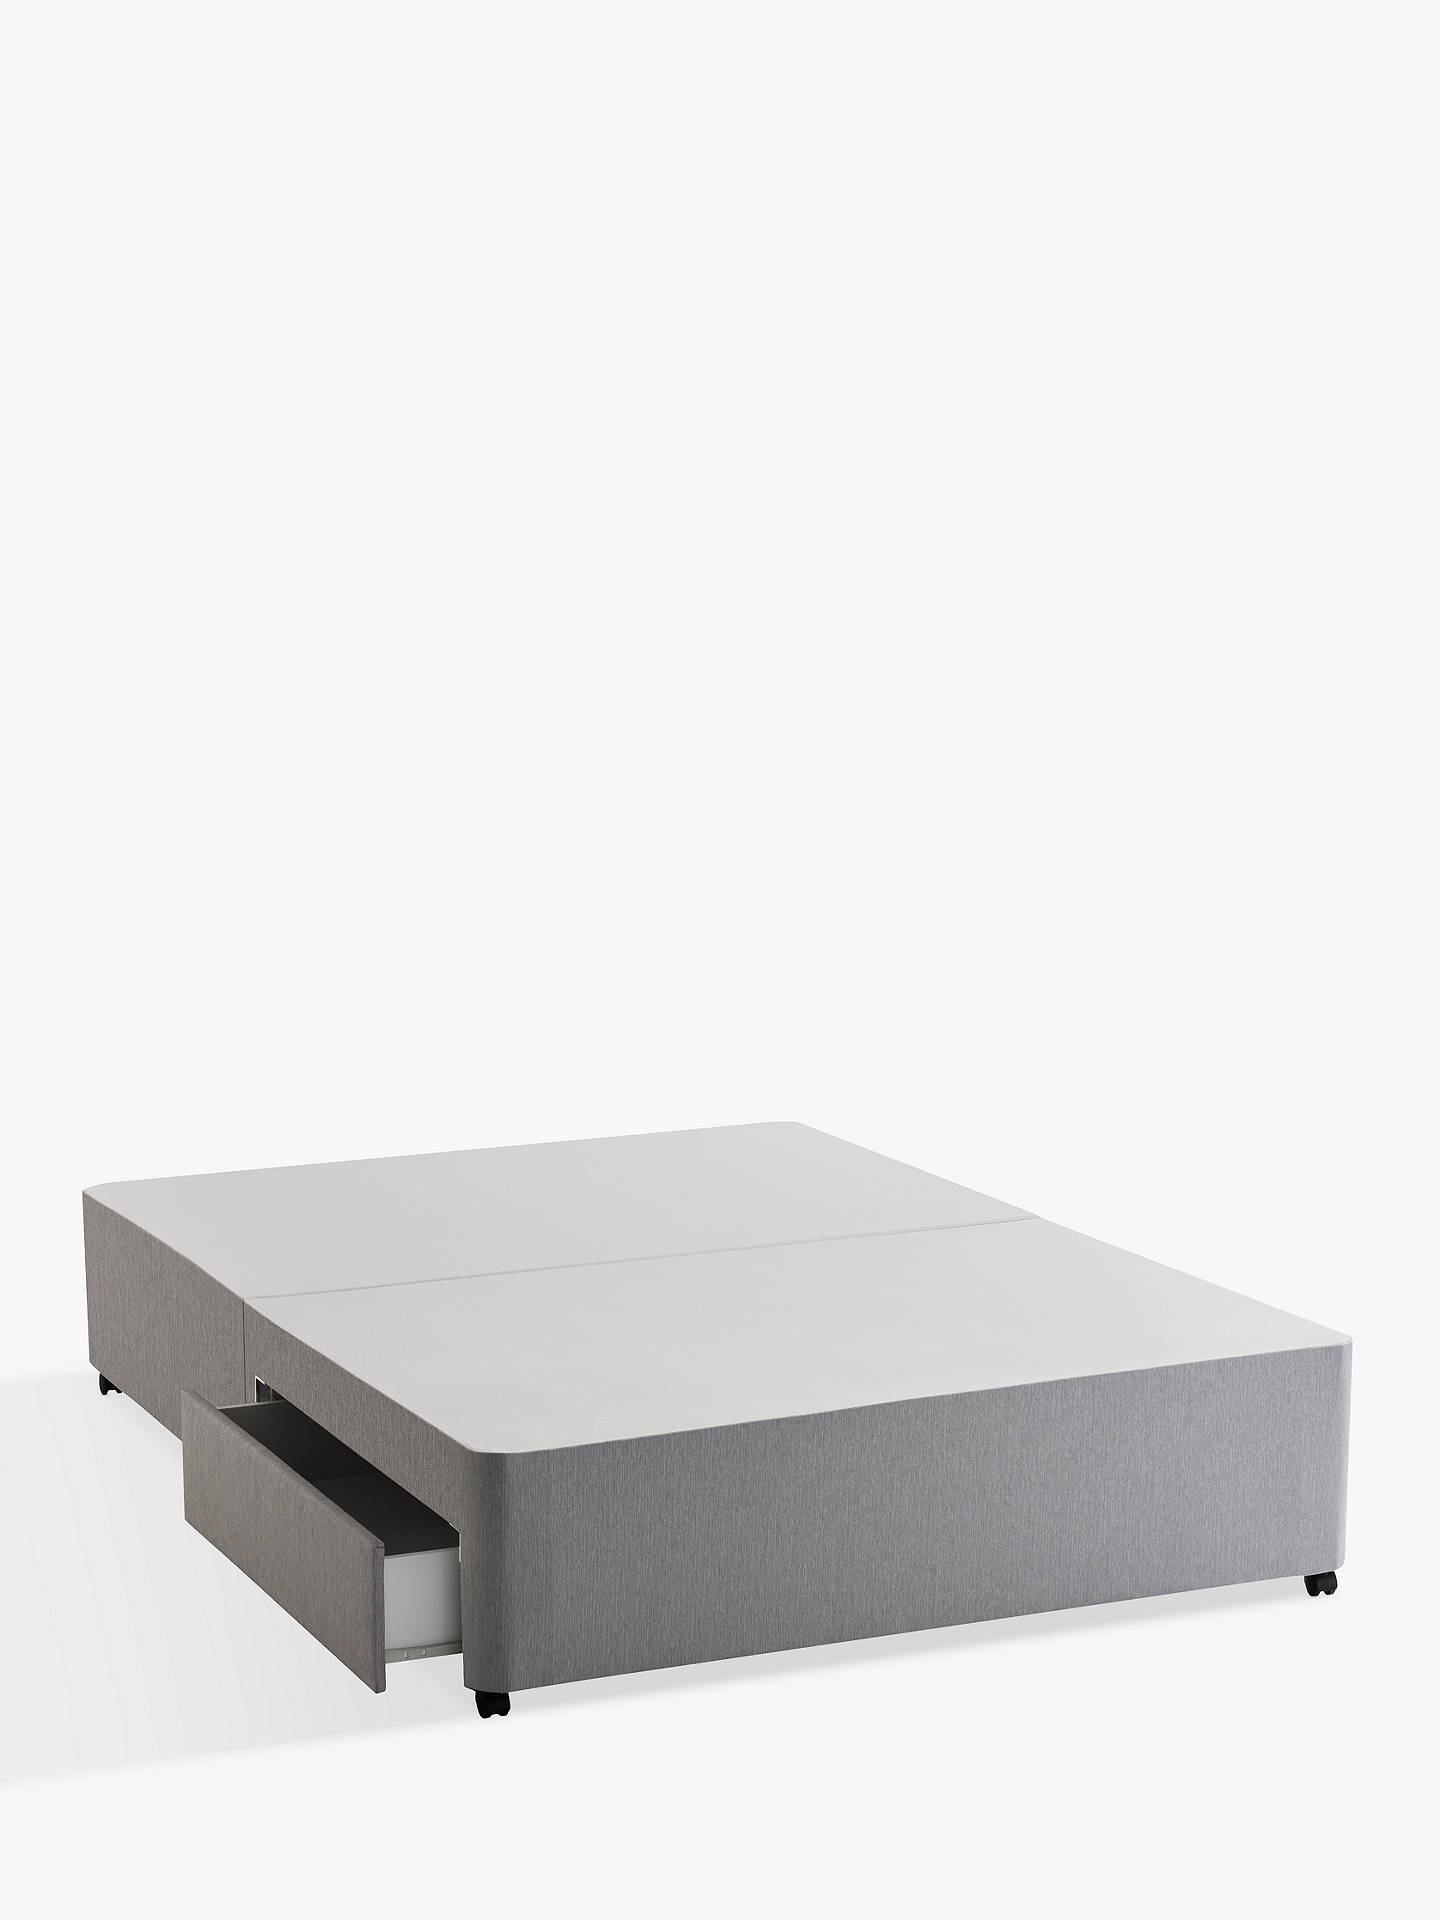 BuySilentnight Sprung Edge 2 Drawer Divan Storage Bed, King Size Online at johnlewis.com